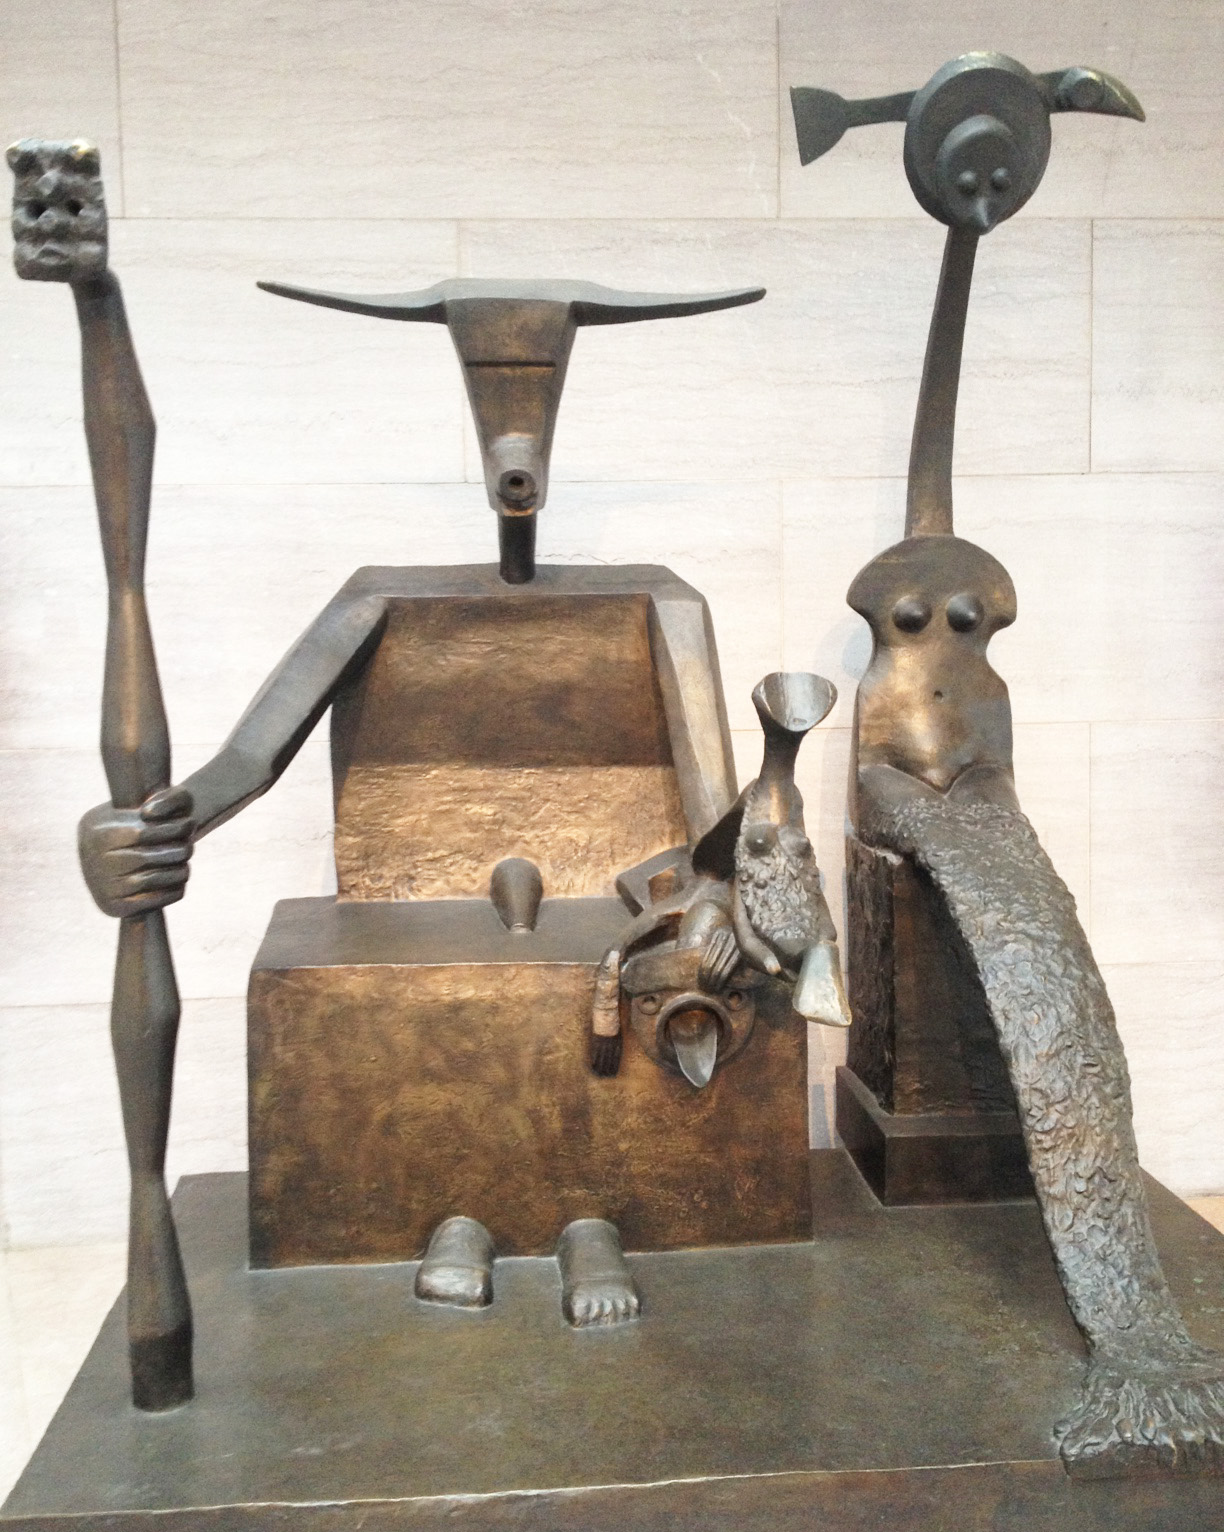 We are fans of Max Ernst's paintings and print work and were happy to discover this sculpture.